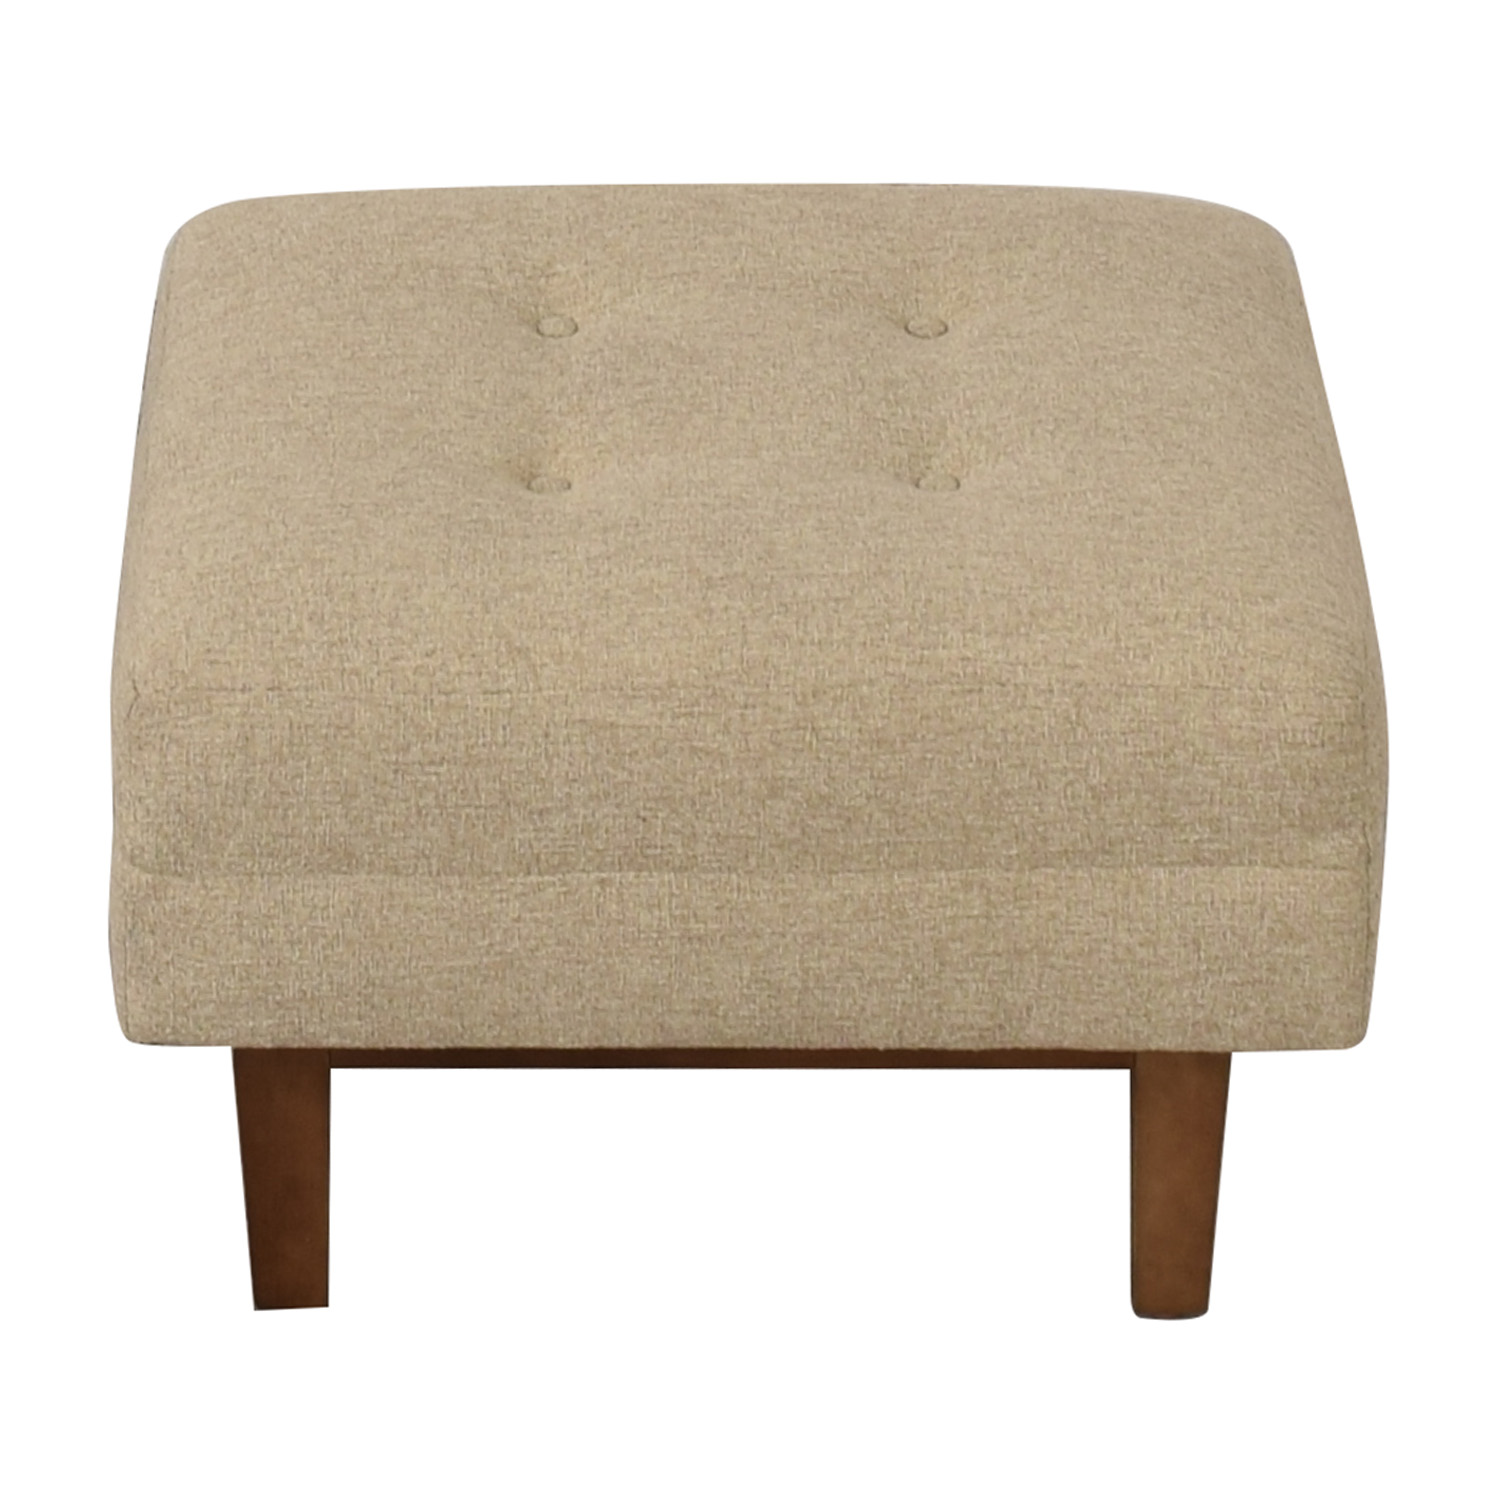 buy  Rowe Furniture Ethan Beige Tufted Ottoman online